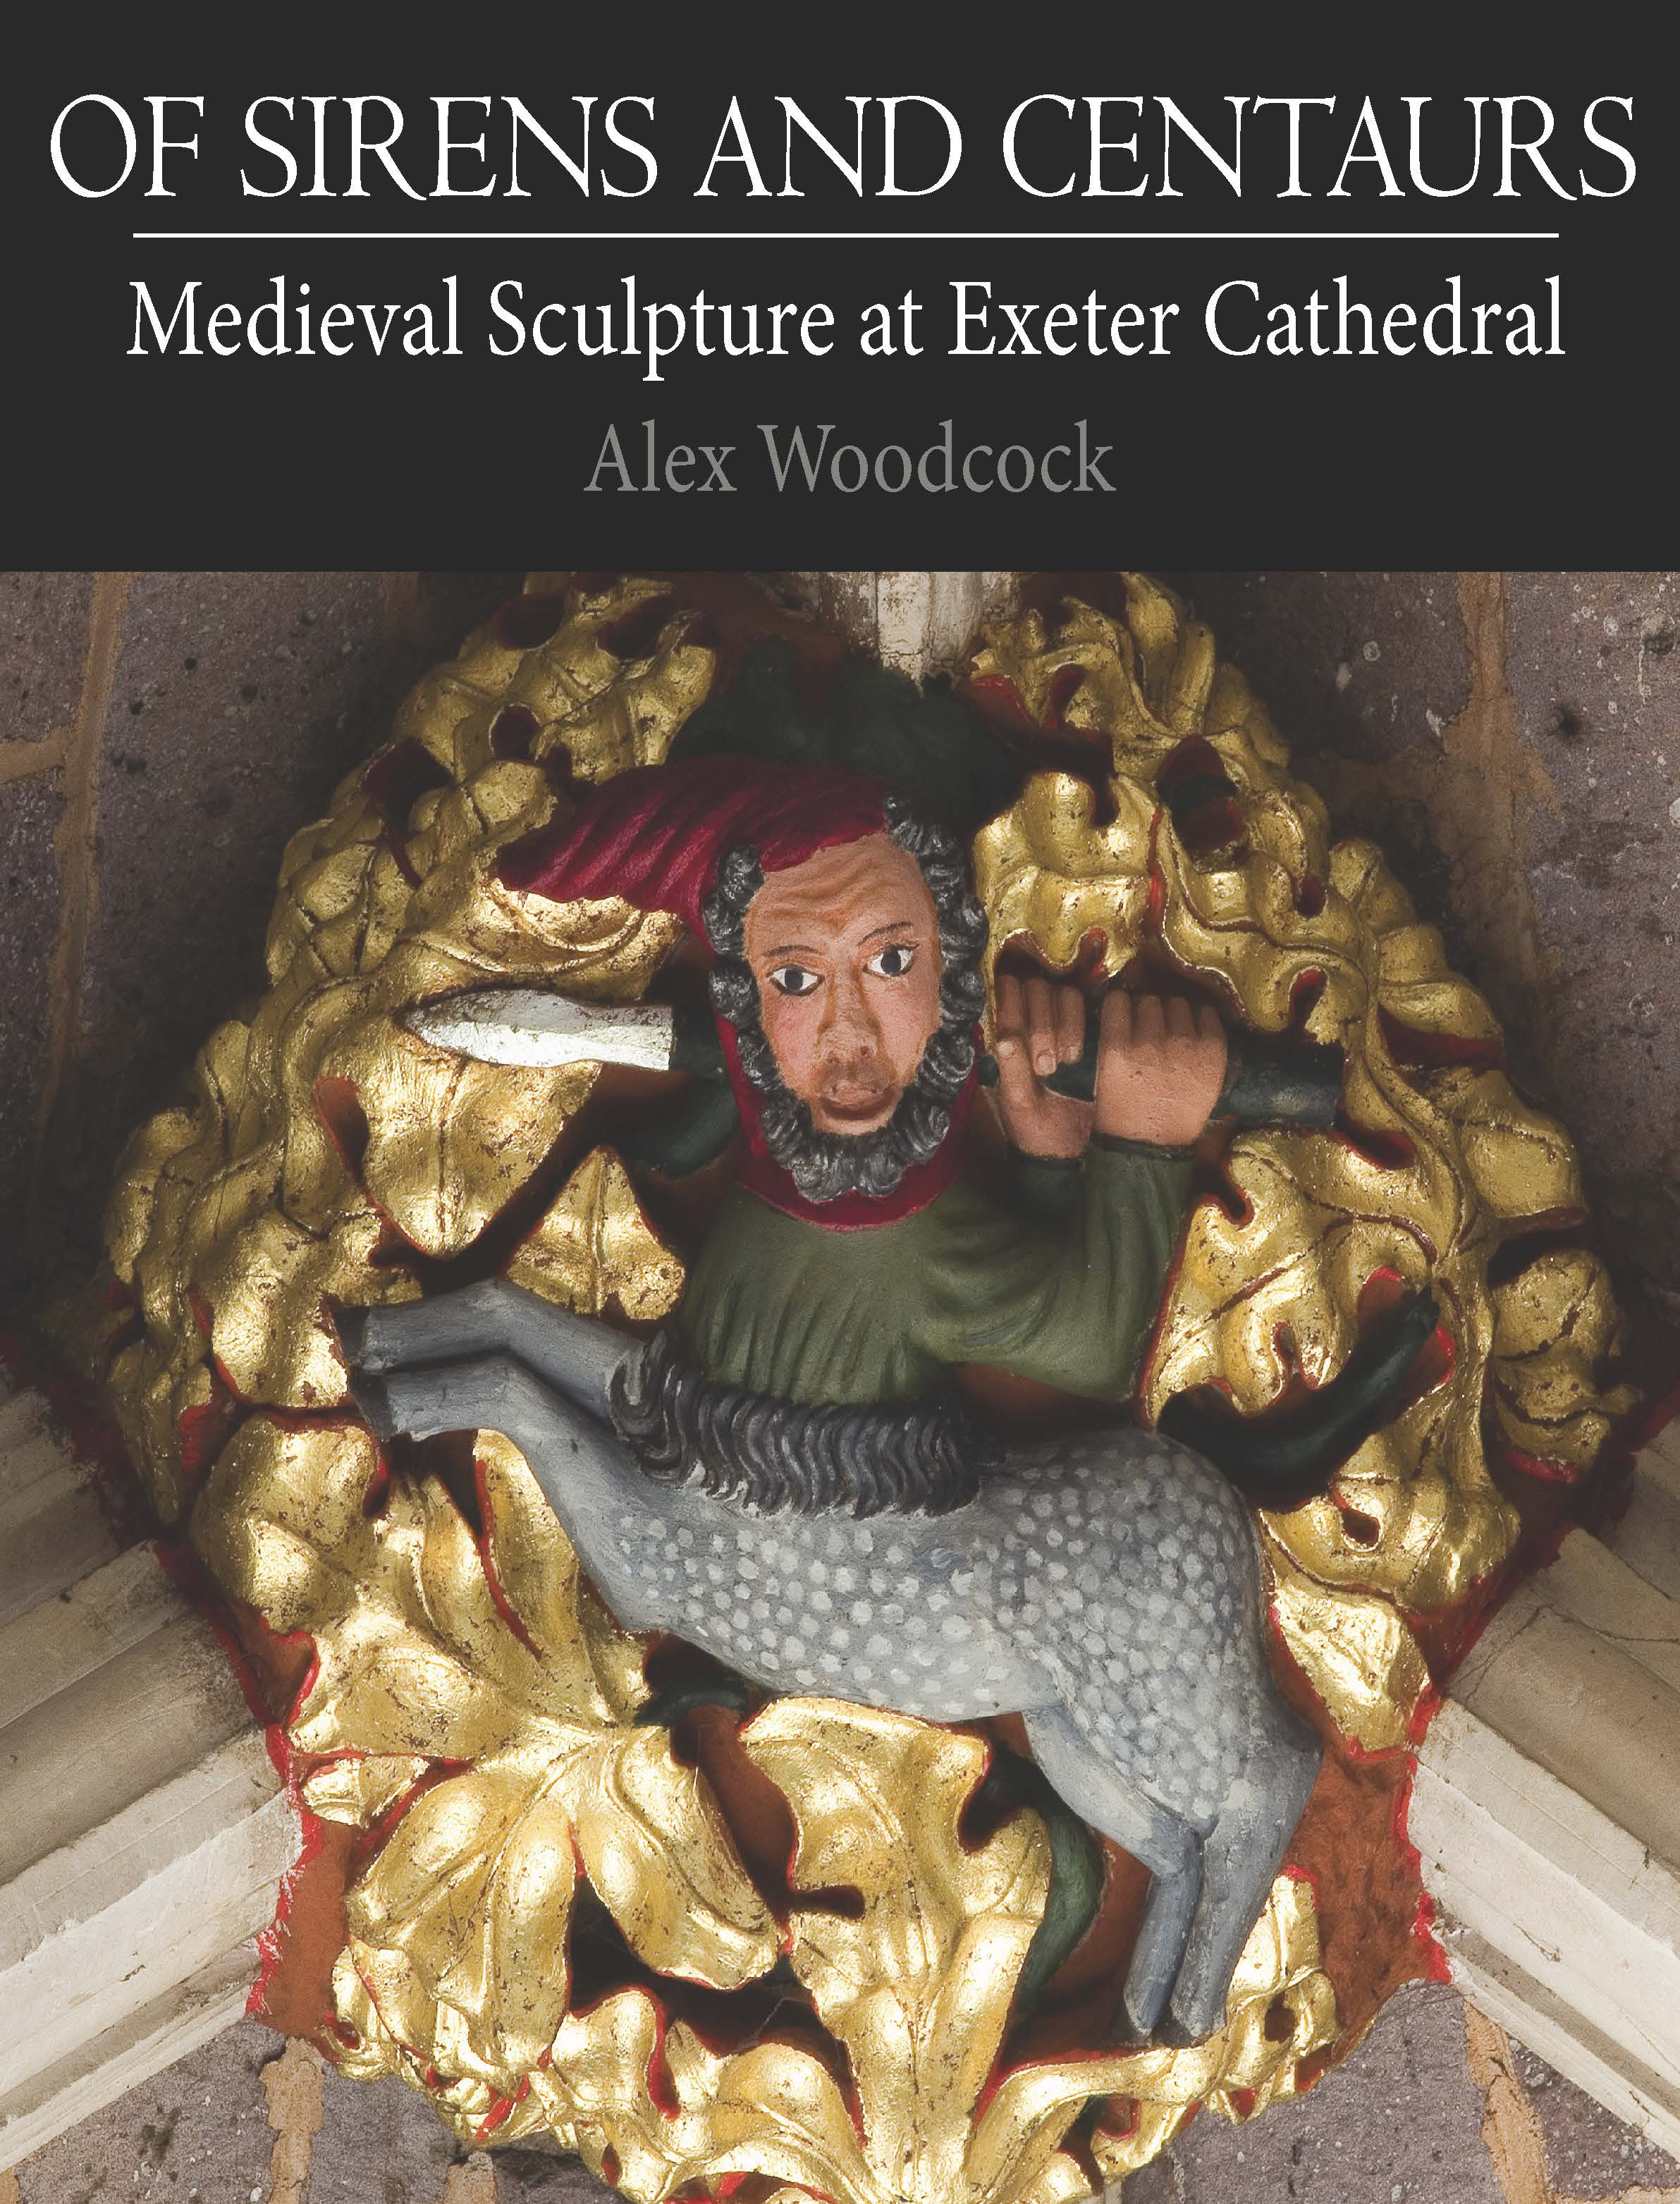 Of Sirens and Centaurs: Medieval Sculpture at Exeter